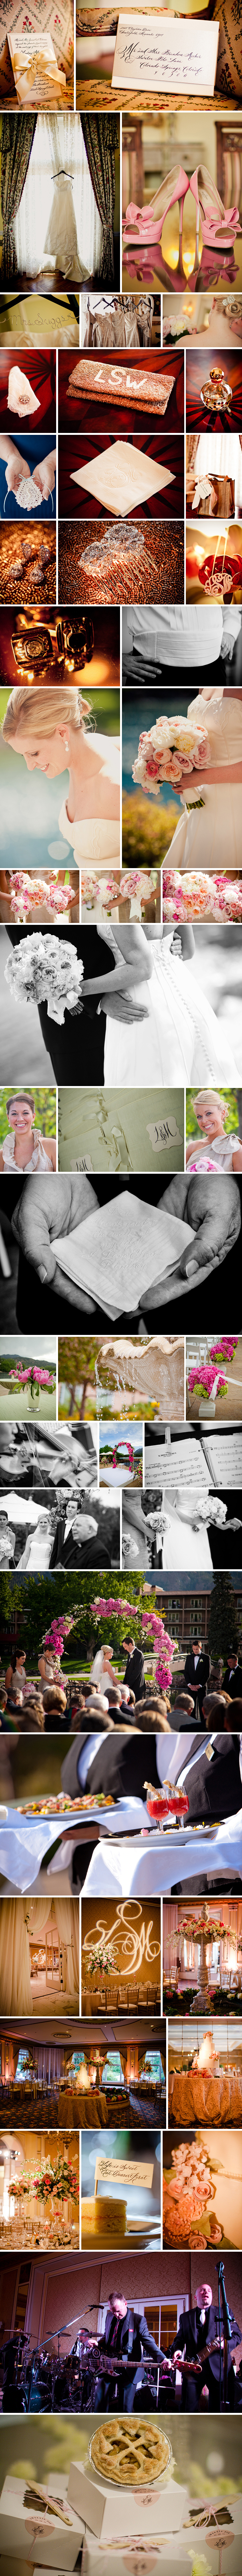 The Wedding Details - Broadmoor